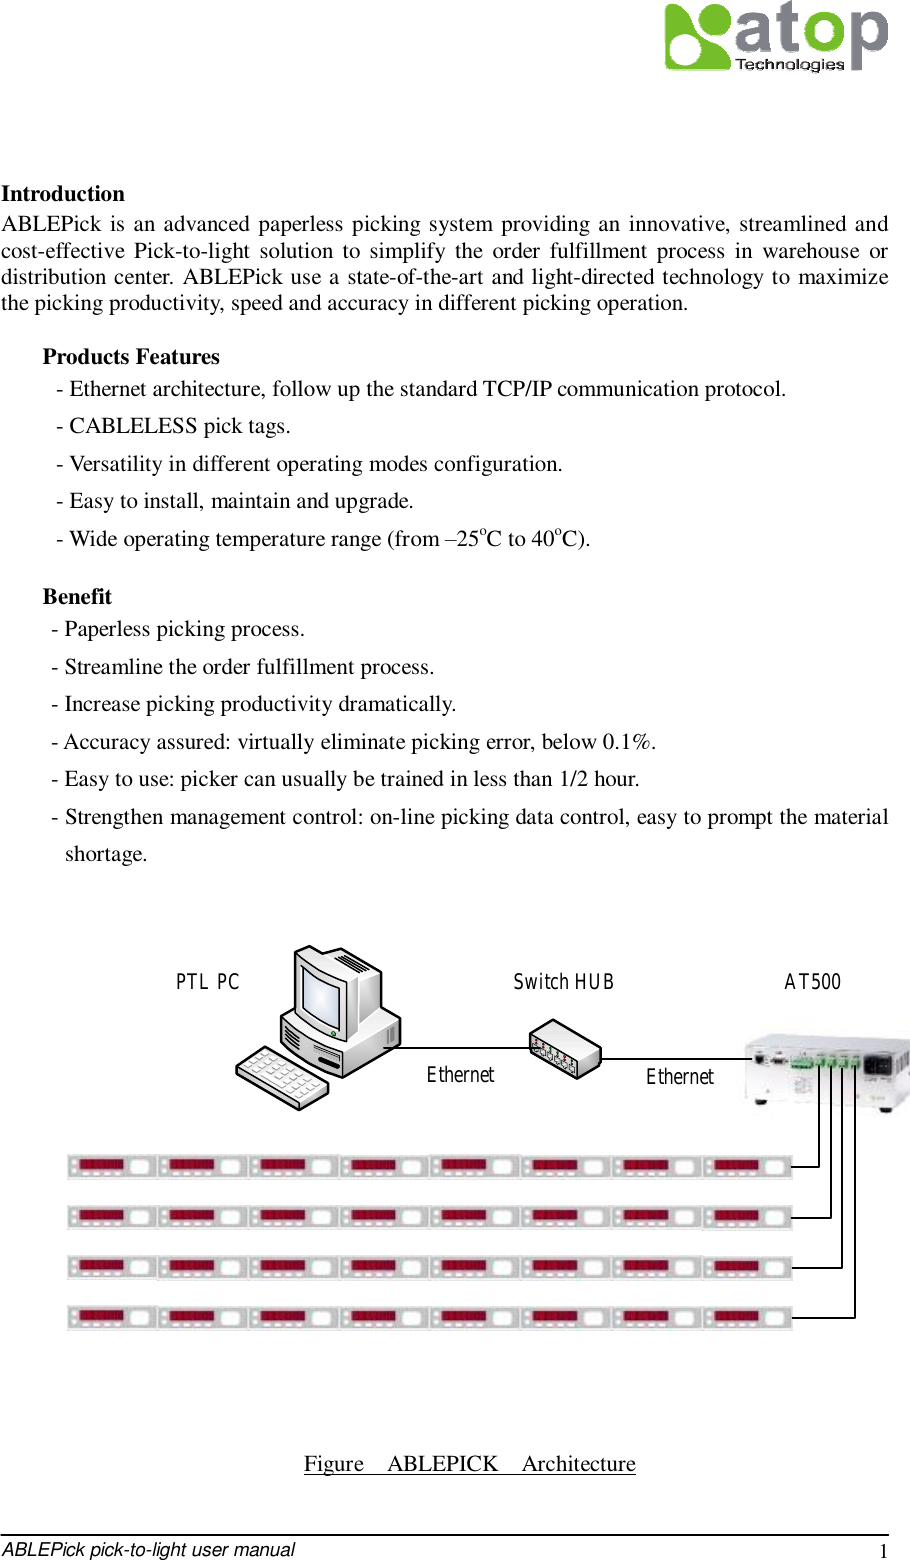 ABLEPick pick-to-light user manual 1  Introduction ABLEPick is an advanced paperless picking system providing an innovative, streamlined and cost-effective Pick-to-light solution to simplify the order fulfillment process in warehouse or distribution center. ABLEPick use a state-of-the-art and light-directed technology to maximize the picking productivity, speed and accuracy in different picking operation.  Products Features - Ethernet architecture, follow up the standard TCP/IP communication protocol. - CABLELESS pick tags. - Versatility in different operating modes configuration. - Easy to install, maintain and upgrade. - Wide operating temperature range (from –25oC to 40oC).  Benefit - Paperless picking process. - Streamline the order fulfillment process. - Increase picking productivity dramatically. - Accuracy assured: virtually eliminate picking error, below 0.1%. - Easy to use: picker can usually be trained in less than 1/2 hour. - Strengthen management control: on-line picking data control, easy to prompt the material shortage.                       Figure  ABLEPICK  Architecture  Switch HUB AT500PTL PCEthernet Ethernet